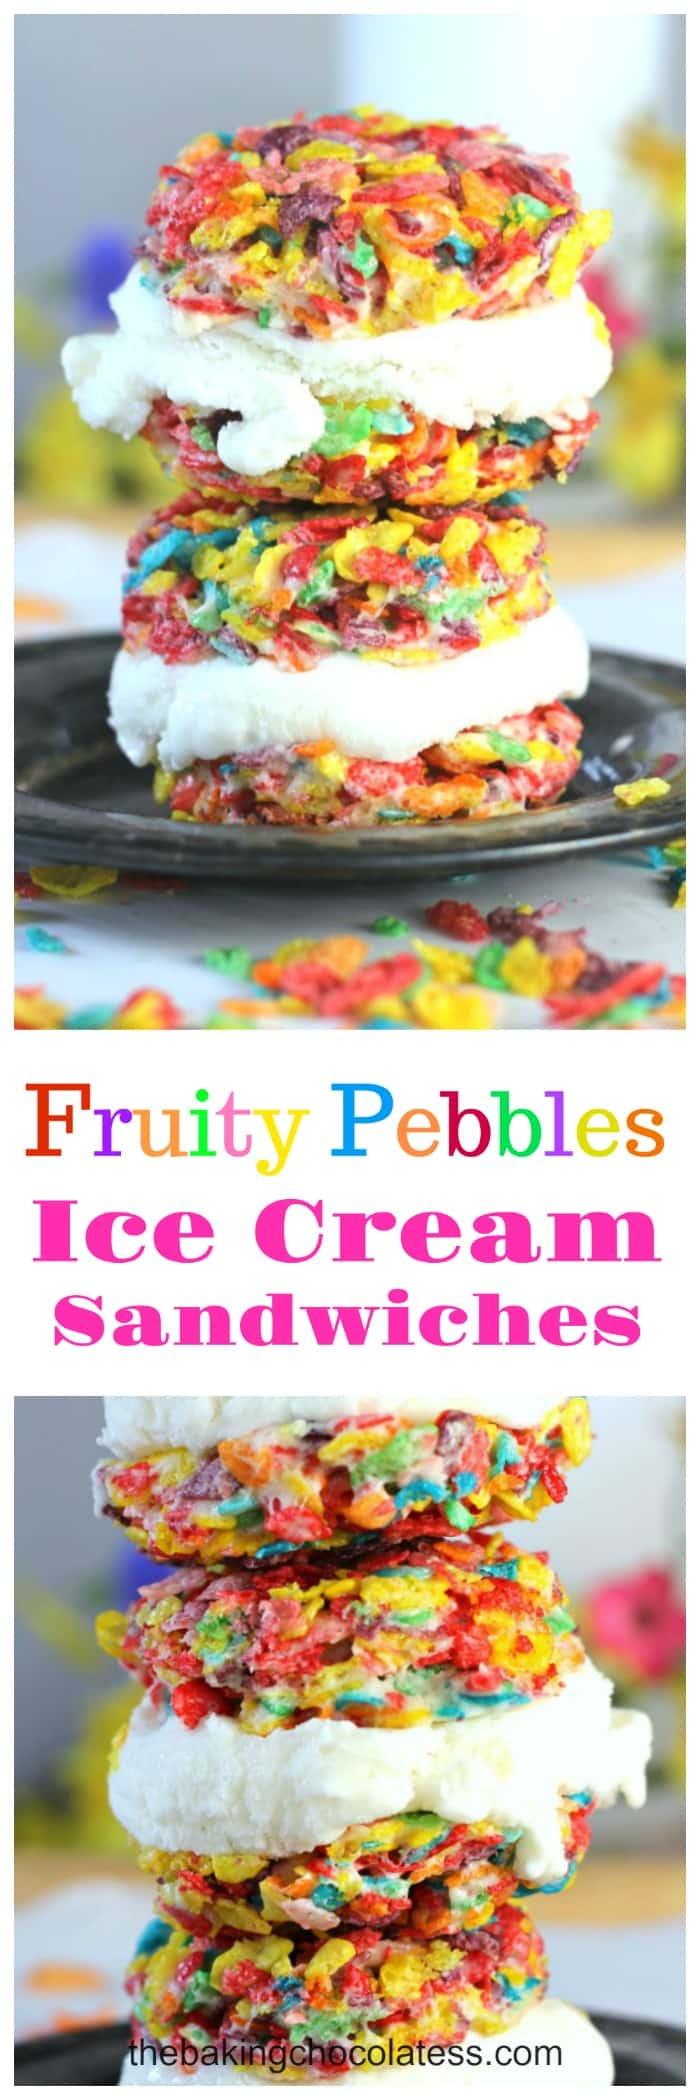 Fruity Pebbles Ice Cream Sandwiches -These are simply adorable. Kind of tastes like a fruity ice cream cone stuffed with yummy vanilla ice cream!  Sweet indulgences for summer!